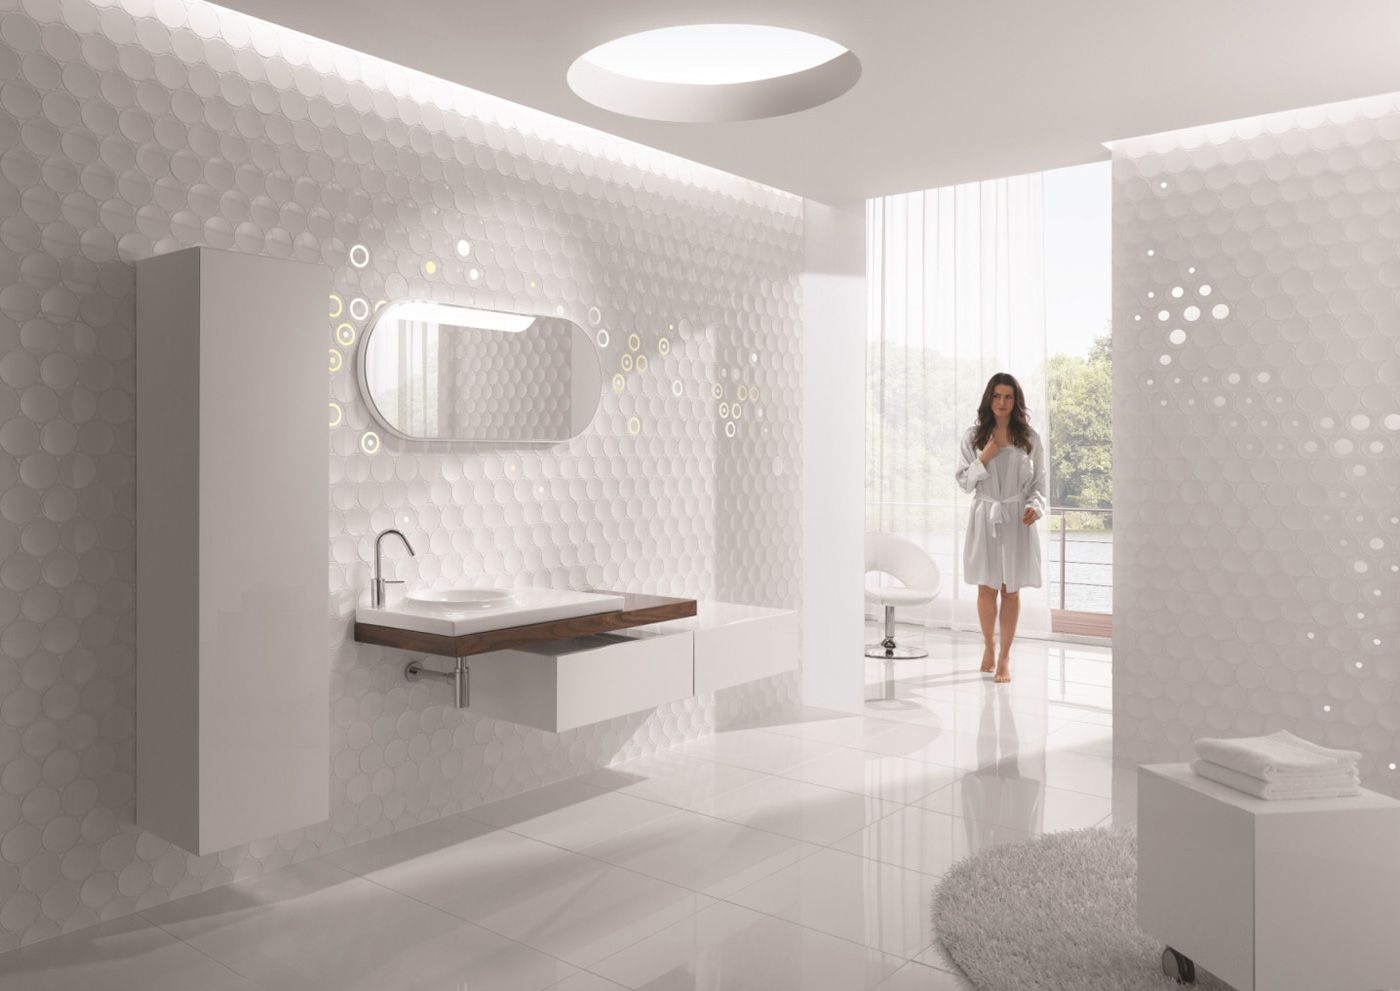 Image Gallery Website small bathroom design white enchanting bathroom tile ideas and futuristic spacious bathroom interior design also beautiful